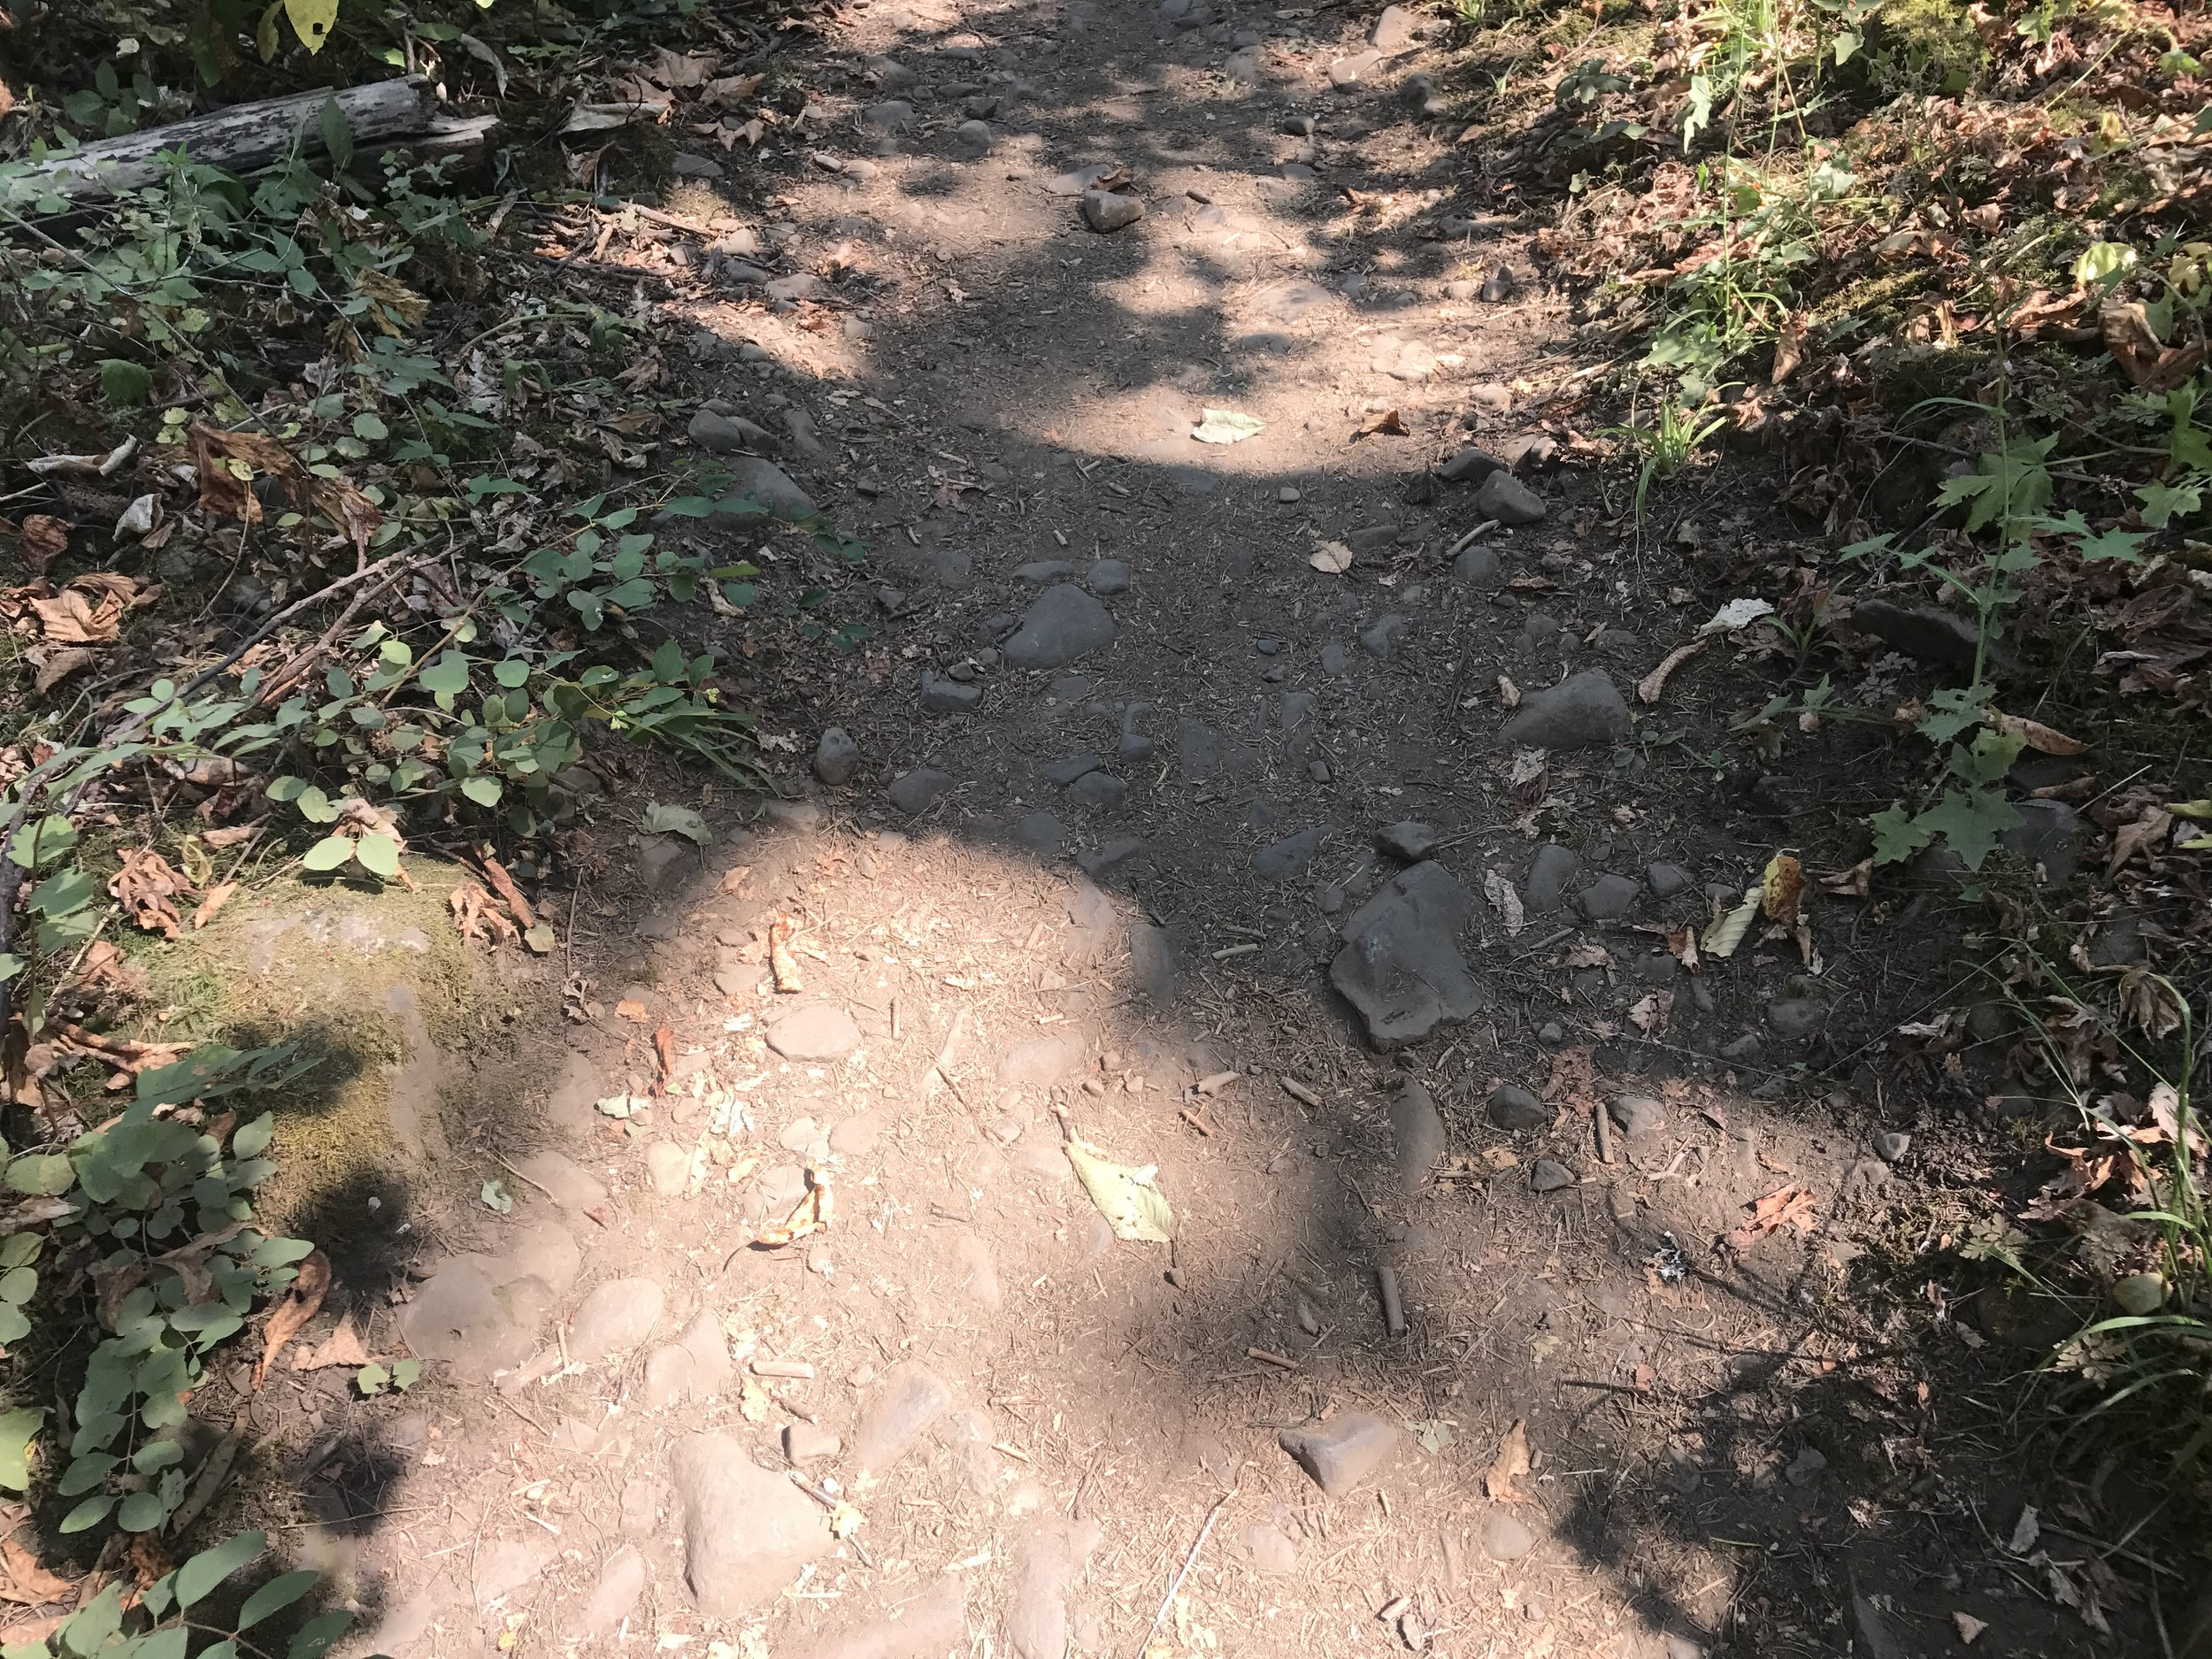 Someone commented on how rocky the trail was in this section - I laughed inwardly and kept on walking.